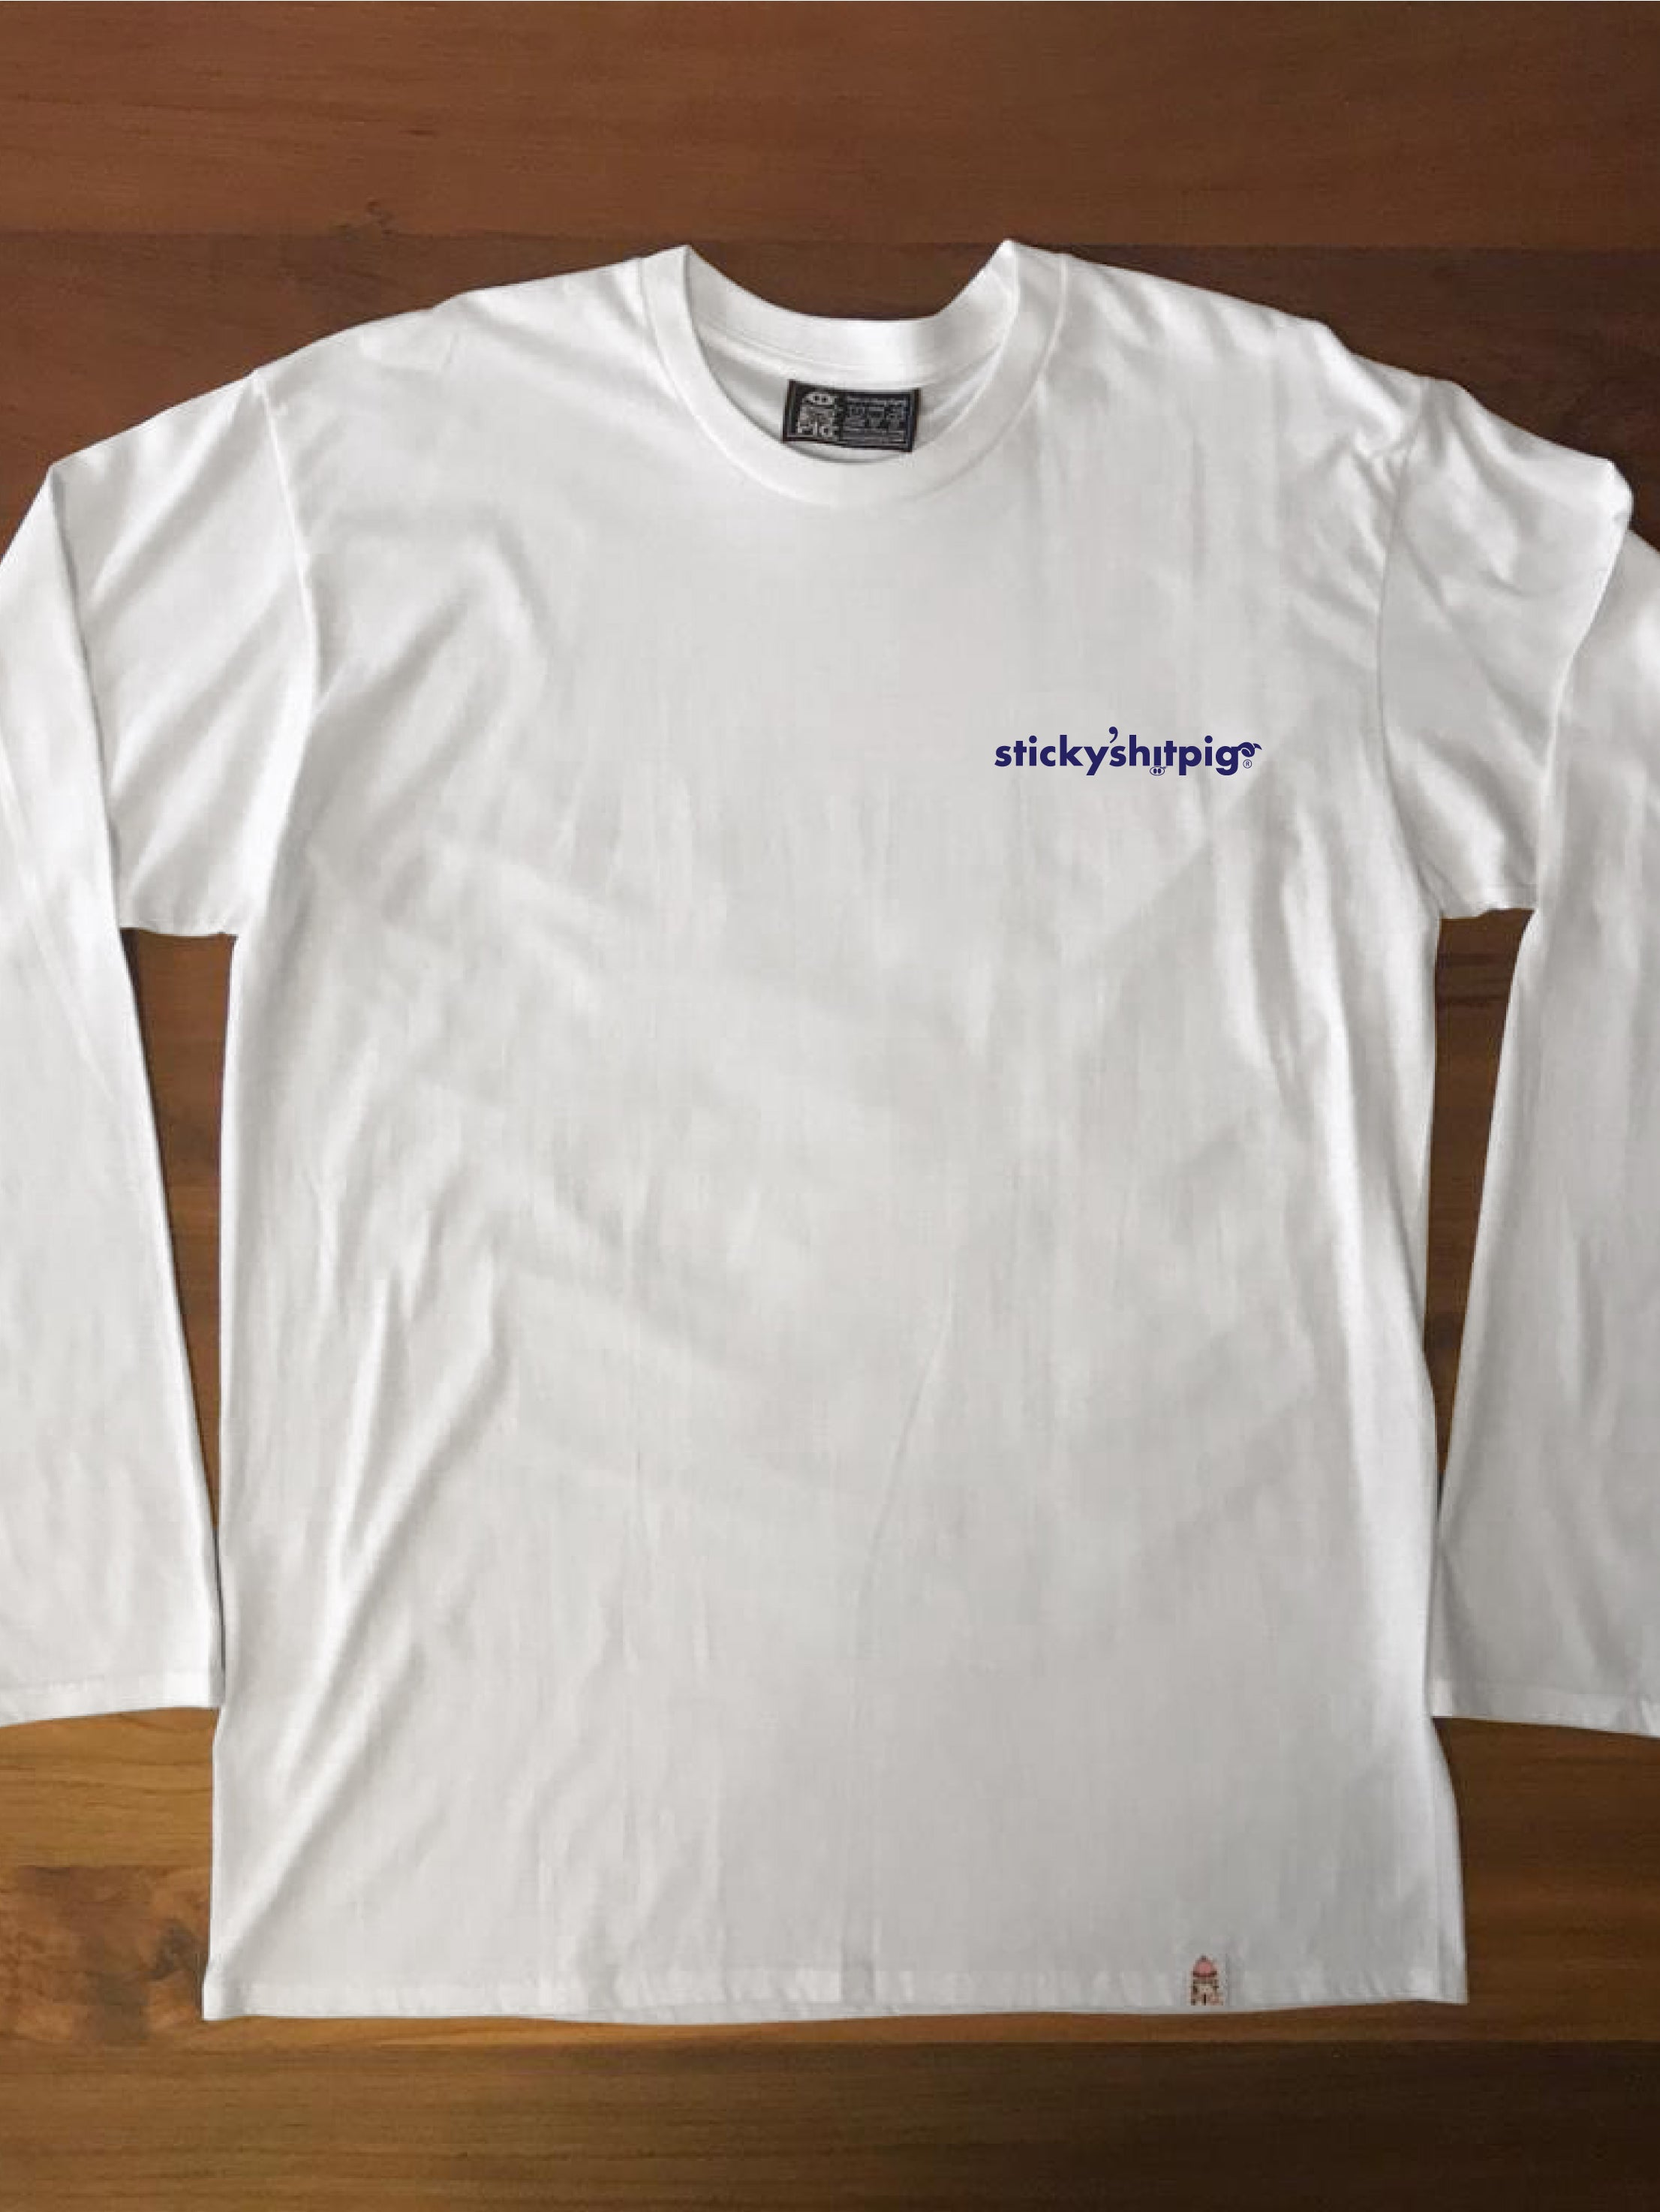 SSP SMALL LOGO (WHITE) - Adults Long Sleeve Tee